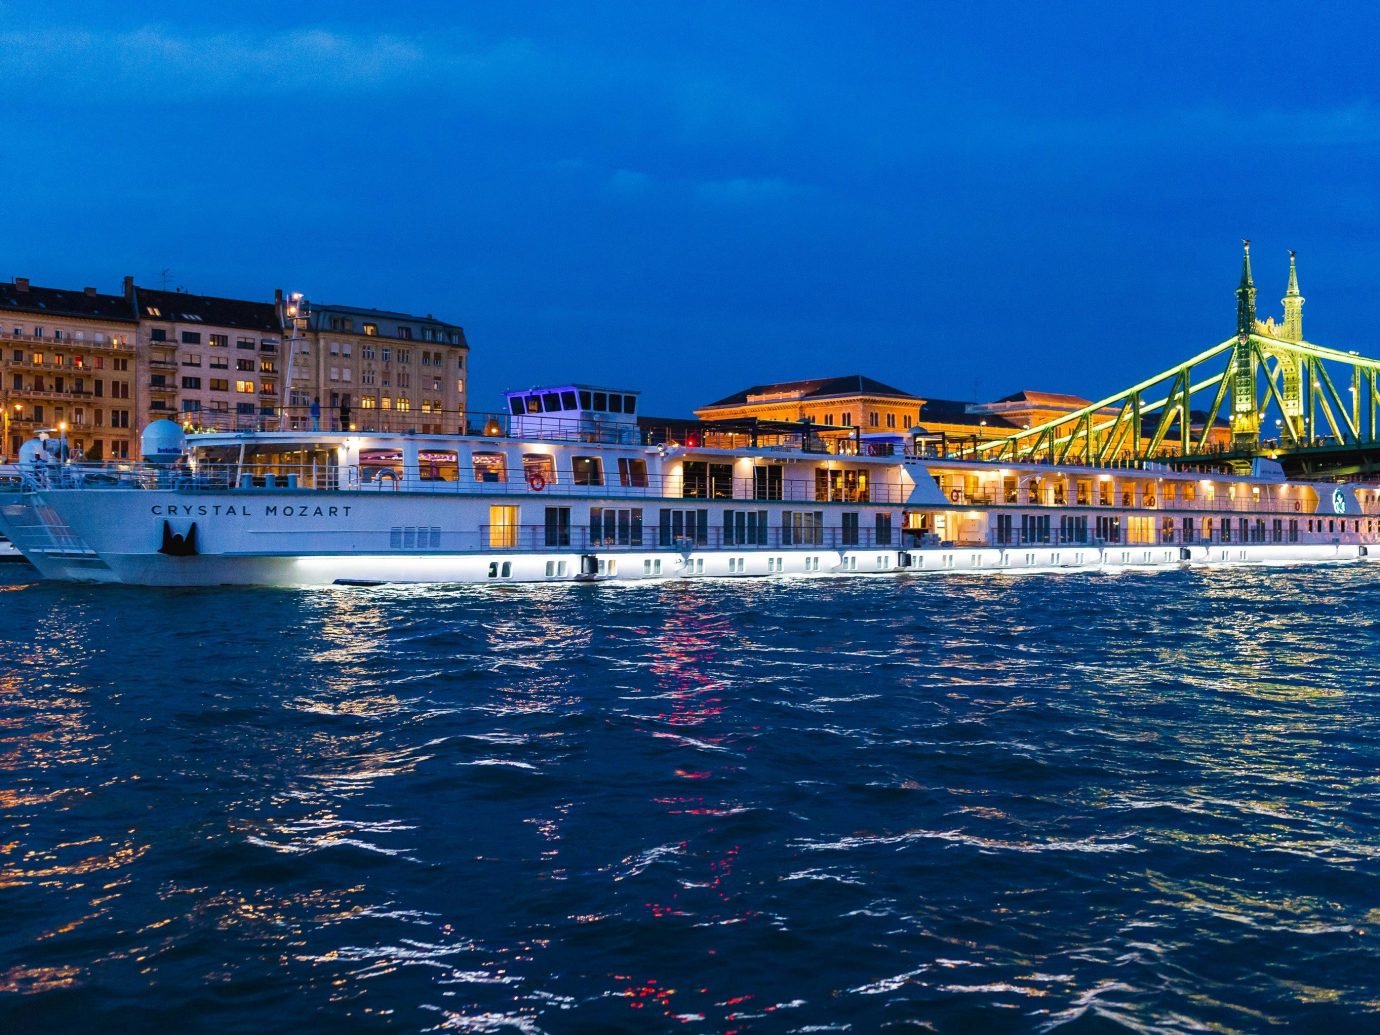 Cruise Travel crystal mozart Luxury Travel Trip Ideas water outdoor scene sky waterway Sea water transportation Boat Harbor passenger ship Ocean watercraft port ferry ship channel tourism motor ship horizon evening City marina day